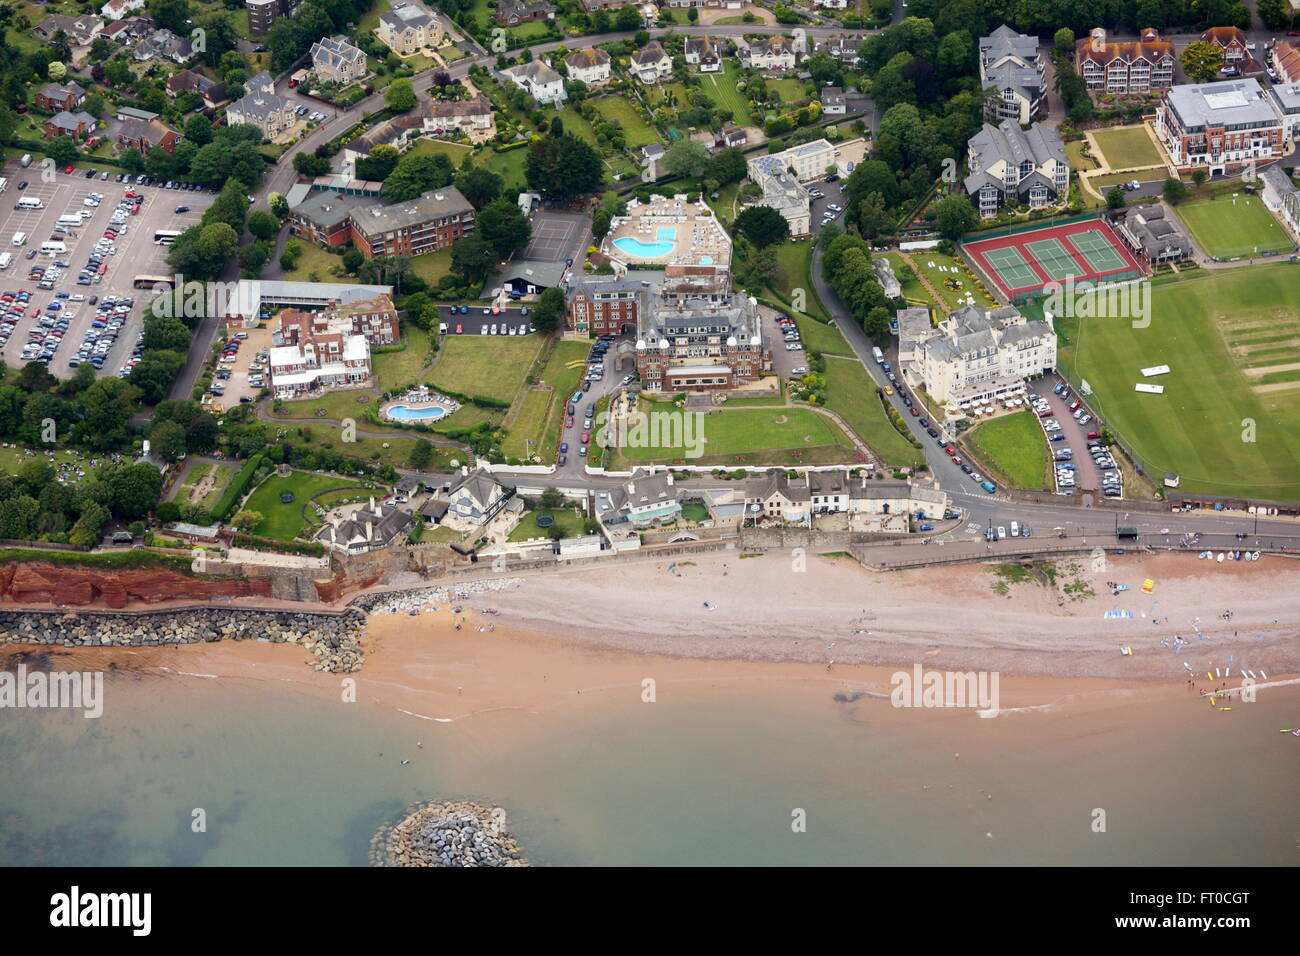 Aerial view of Sidmouth - Stock Image